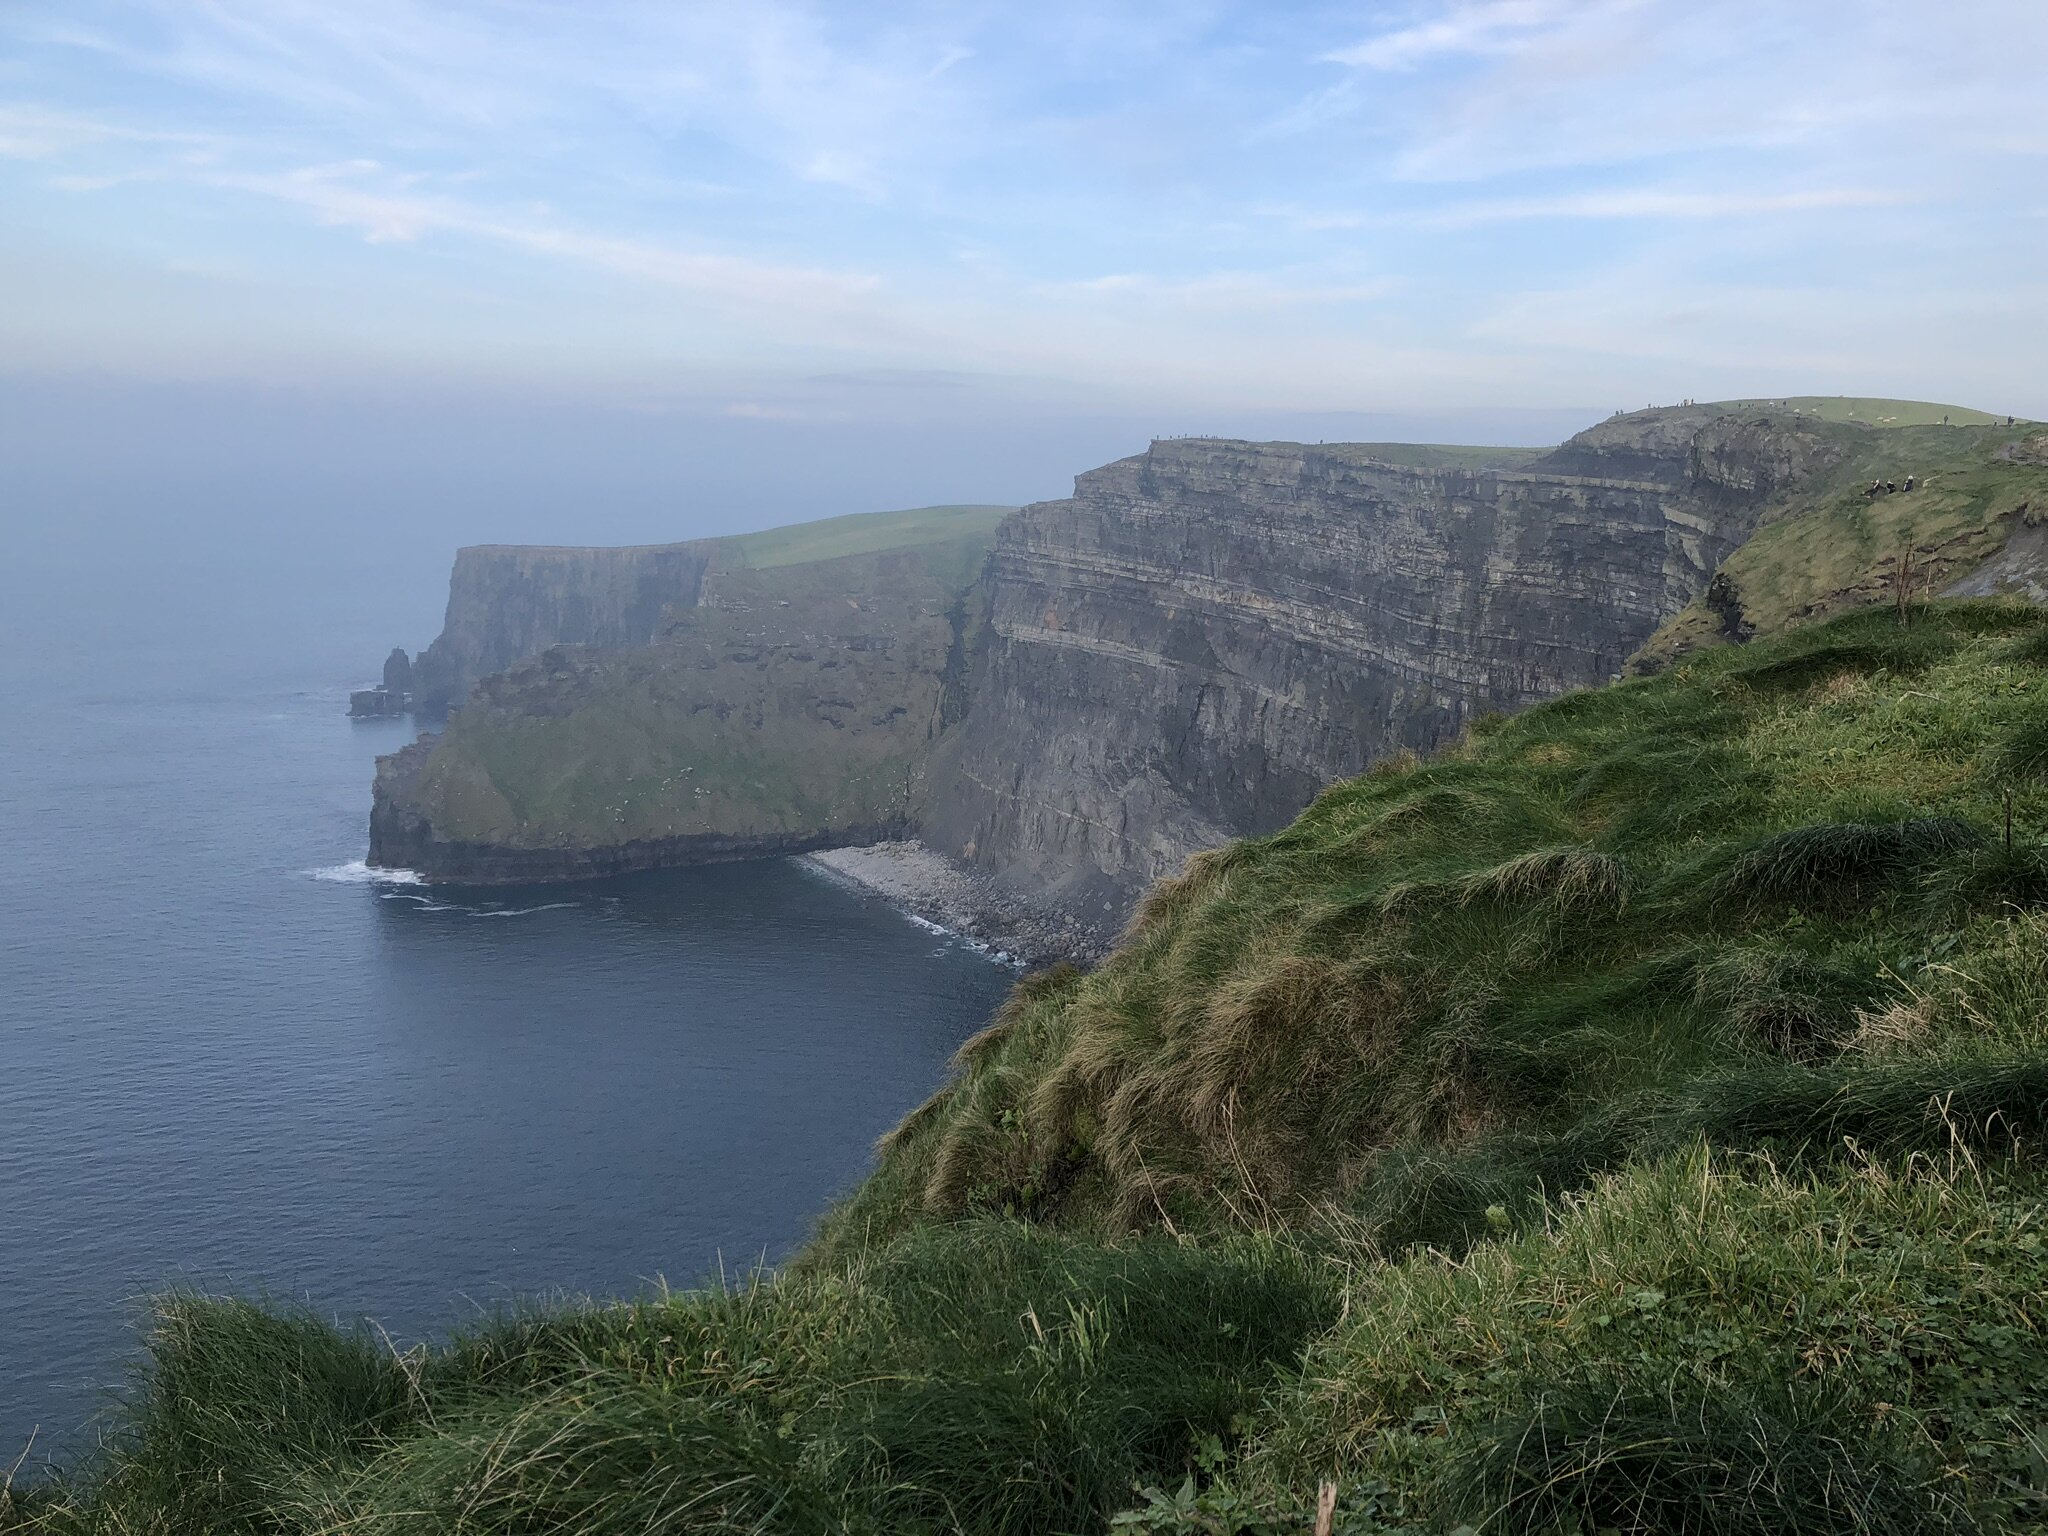 View from the hill top at the Cliffs of Moher.